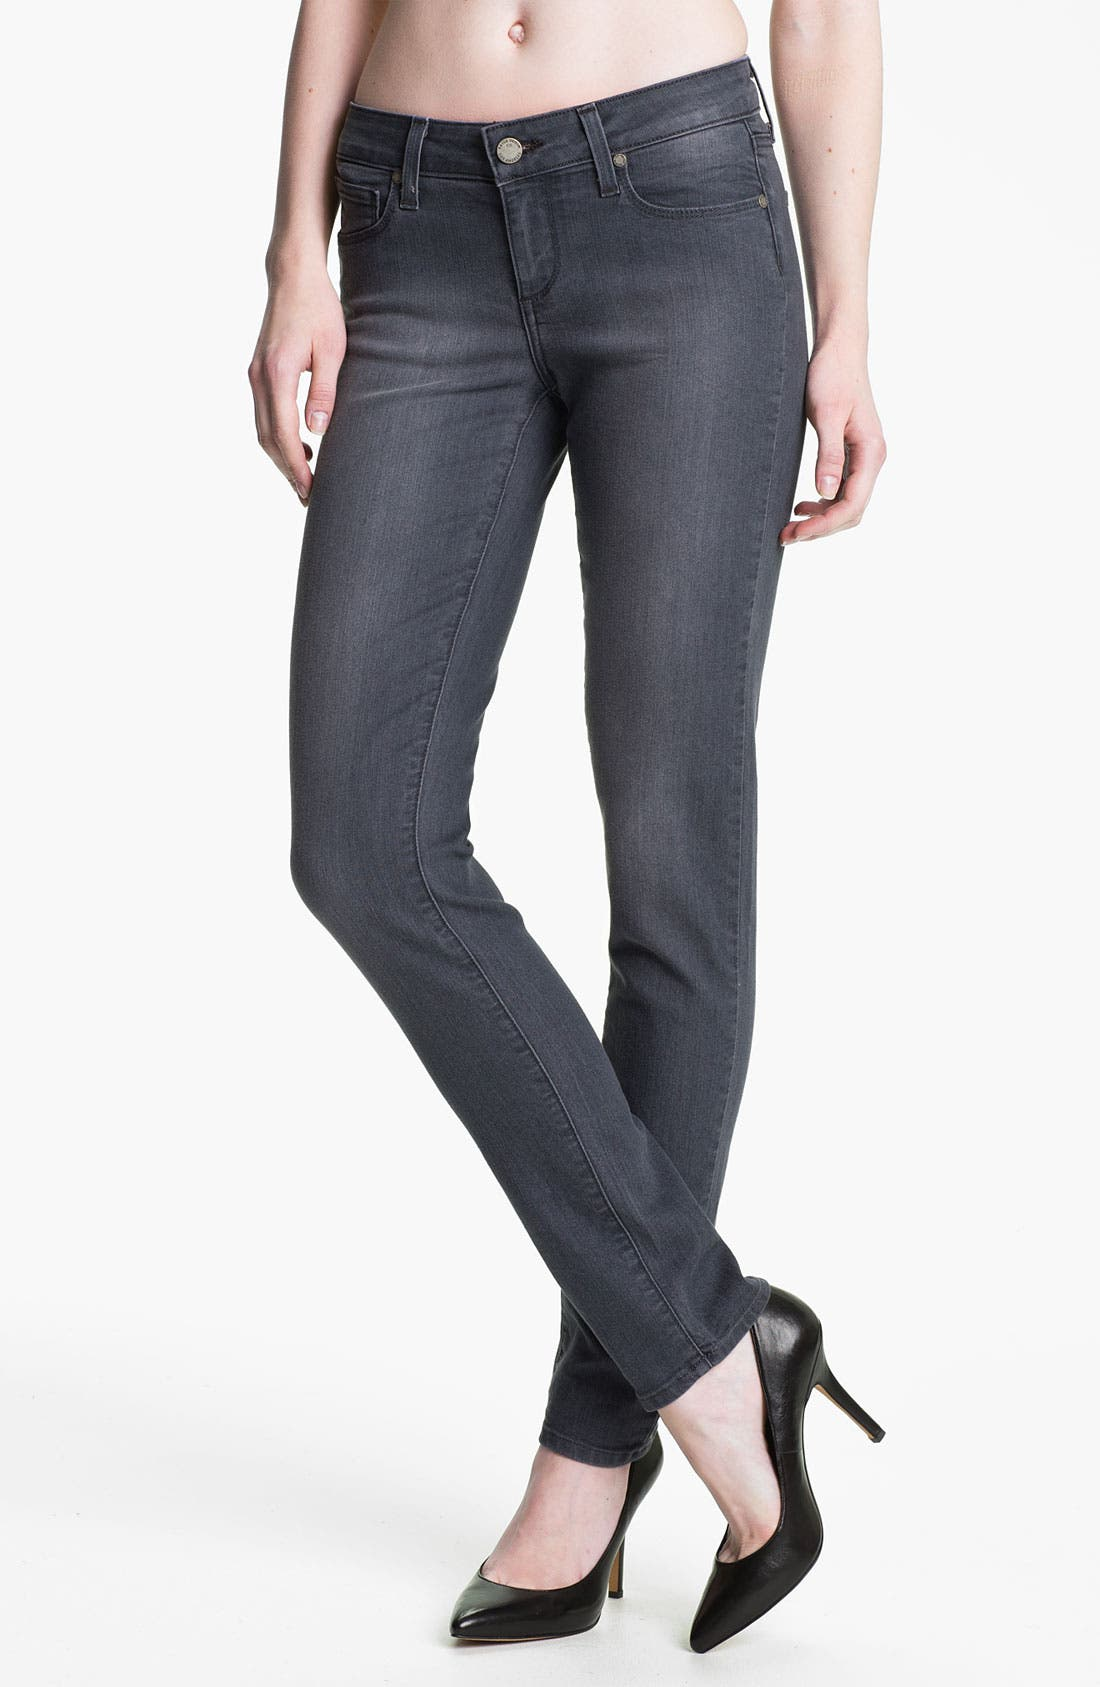 Alternate Image 1 Selected - Paige Denim 'Skyline' Skinny Stretch Jeans (Granite)